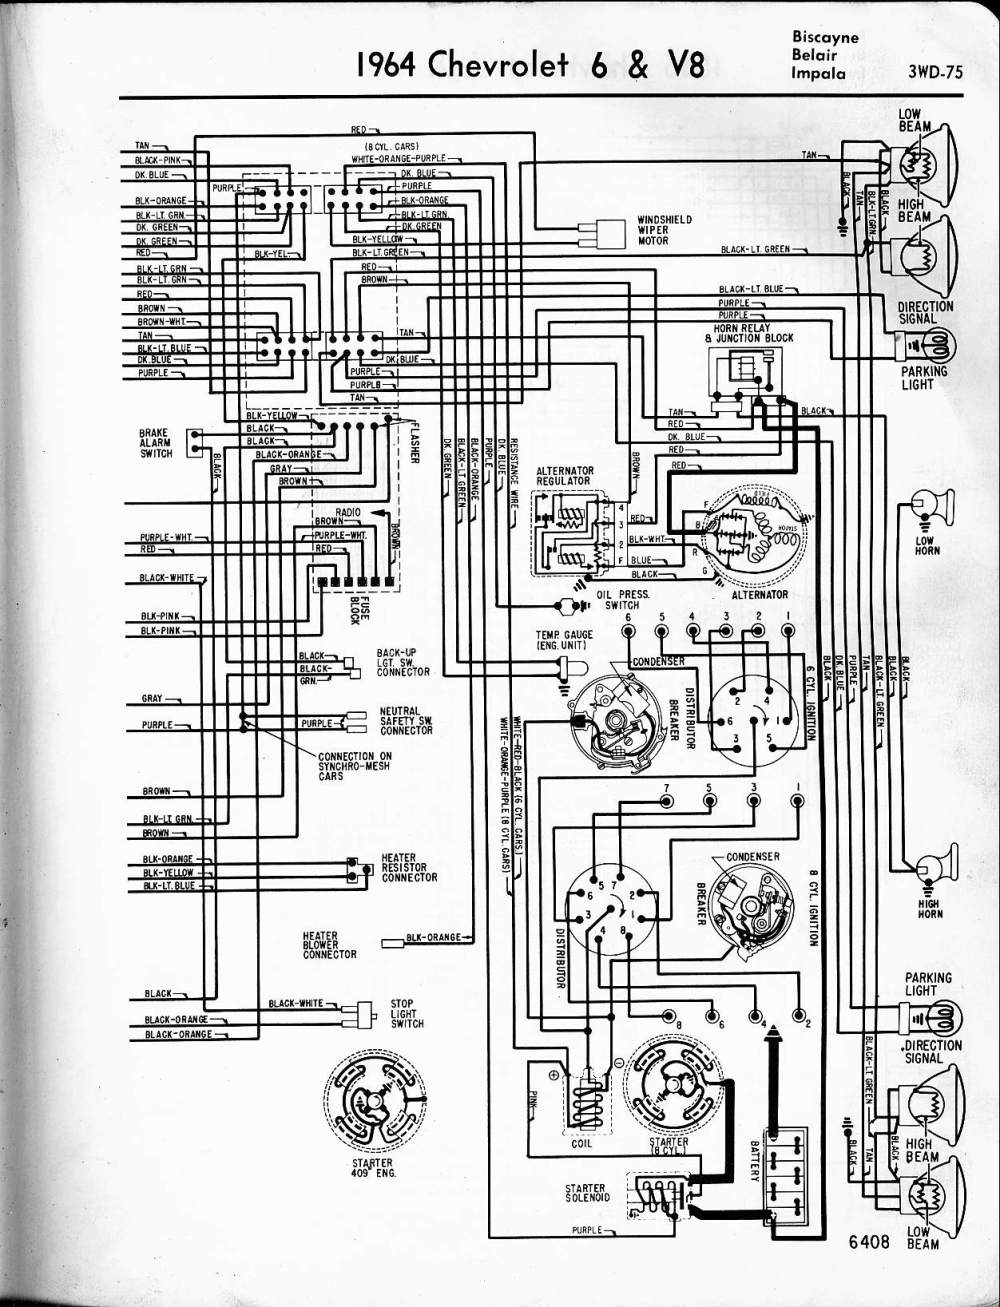 medium resolution of 64 impala wiring diagram simple wiring schema monte carlo diagram impala fuse diagram source 1966 impala chevrolet passenger car